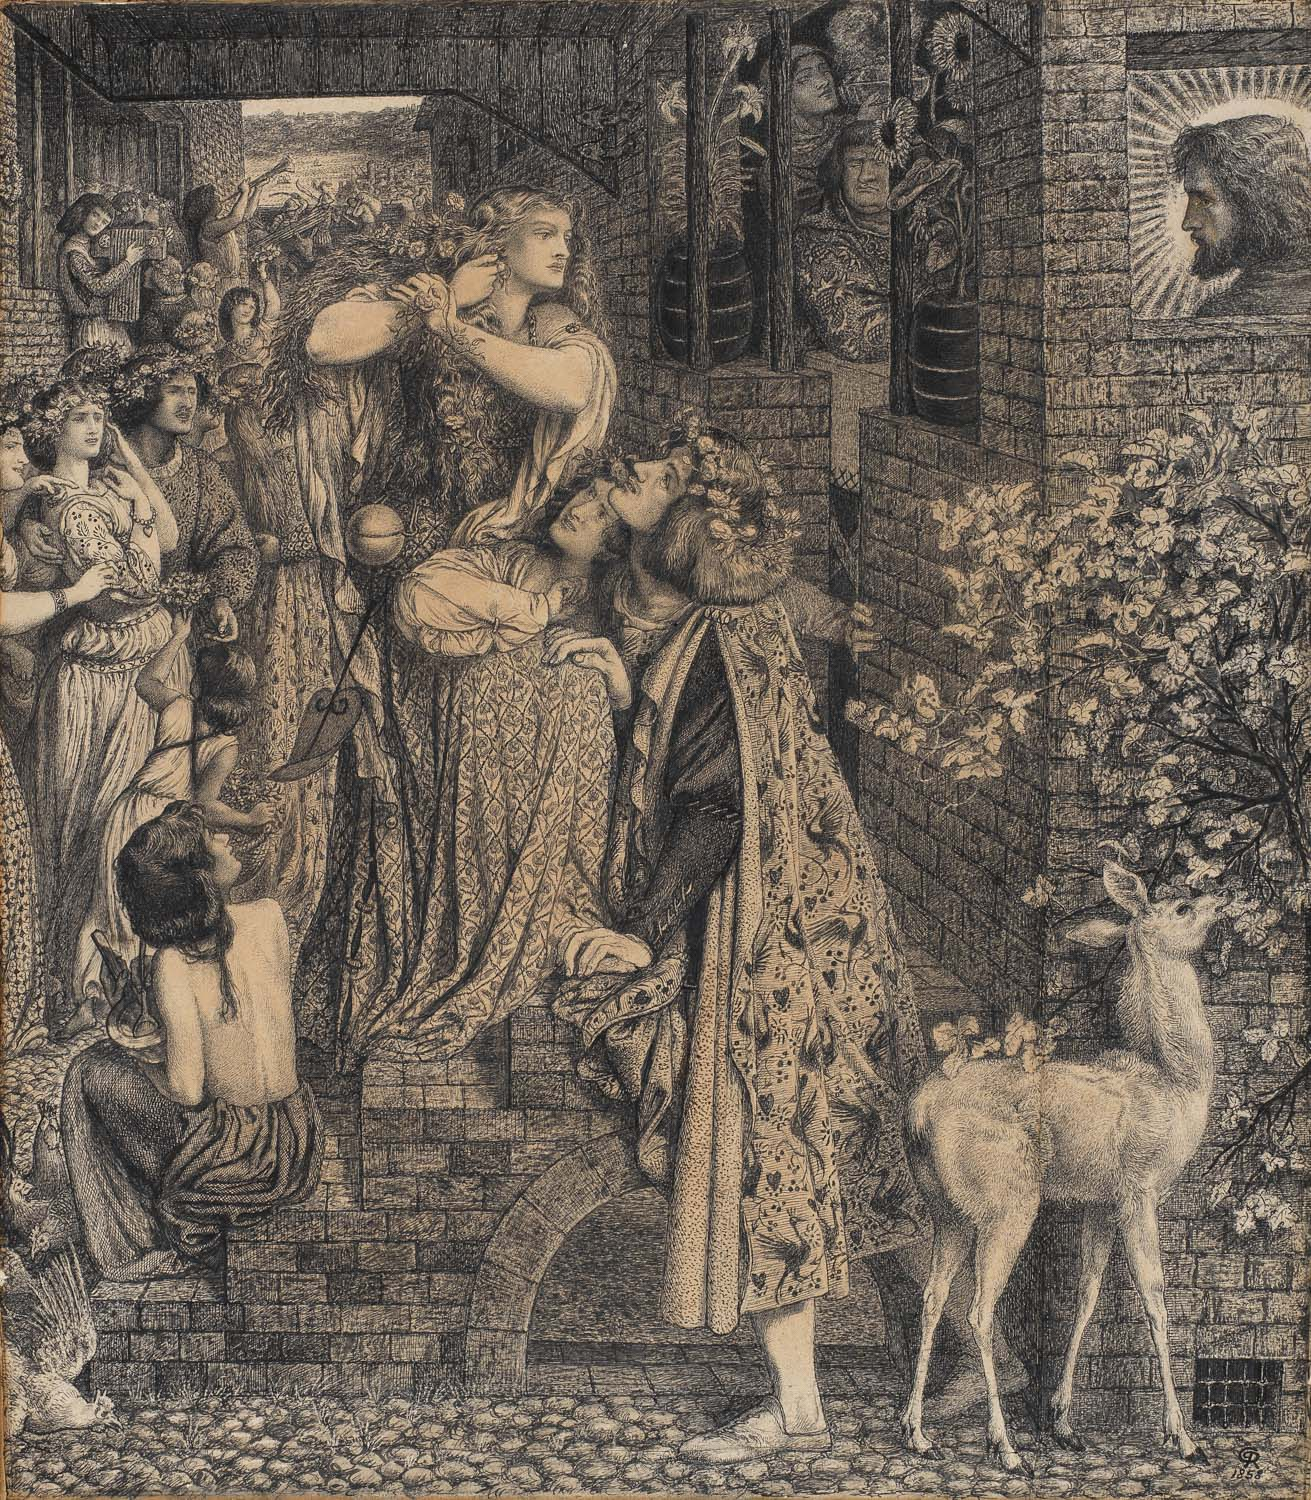 Rossetti's depiction of Mary Magdalene